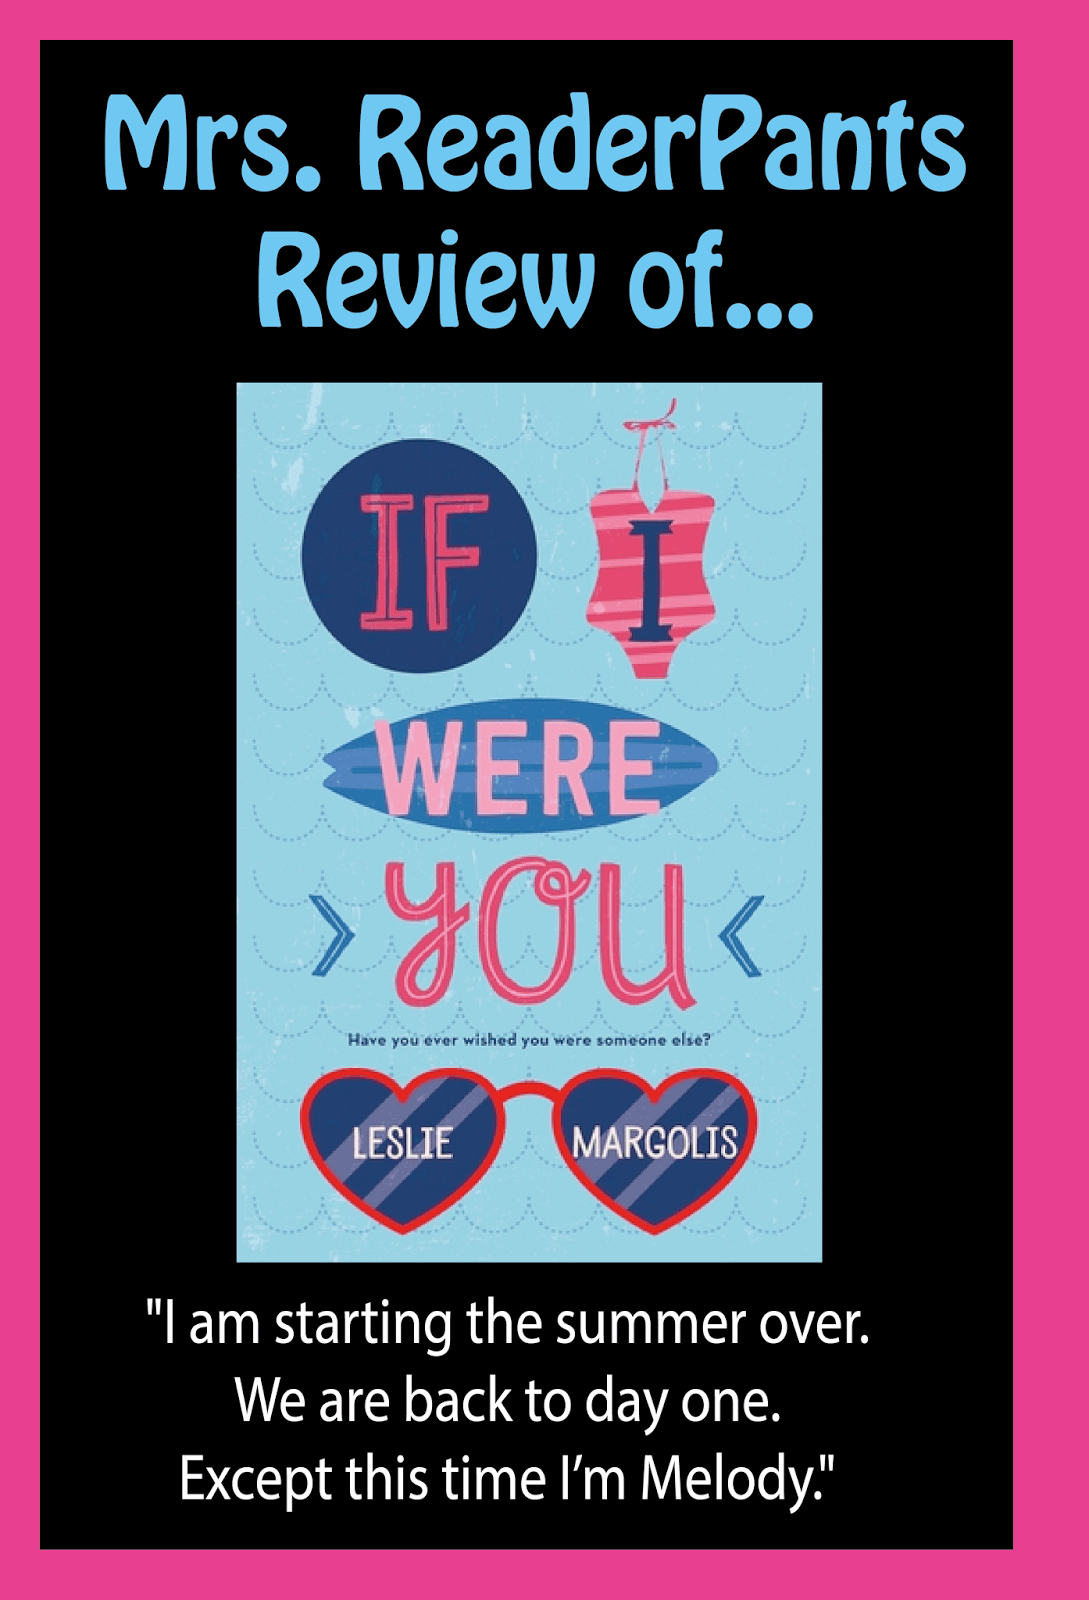 Mrs. ReaderPants reviews If I Were You by Leslie Margolis...